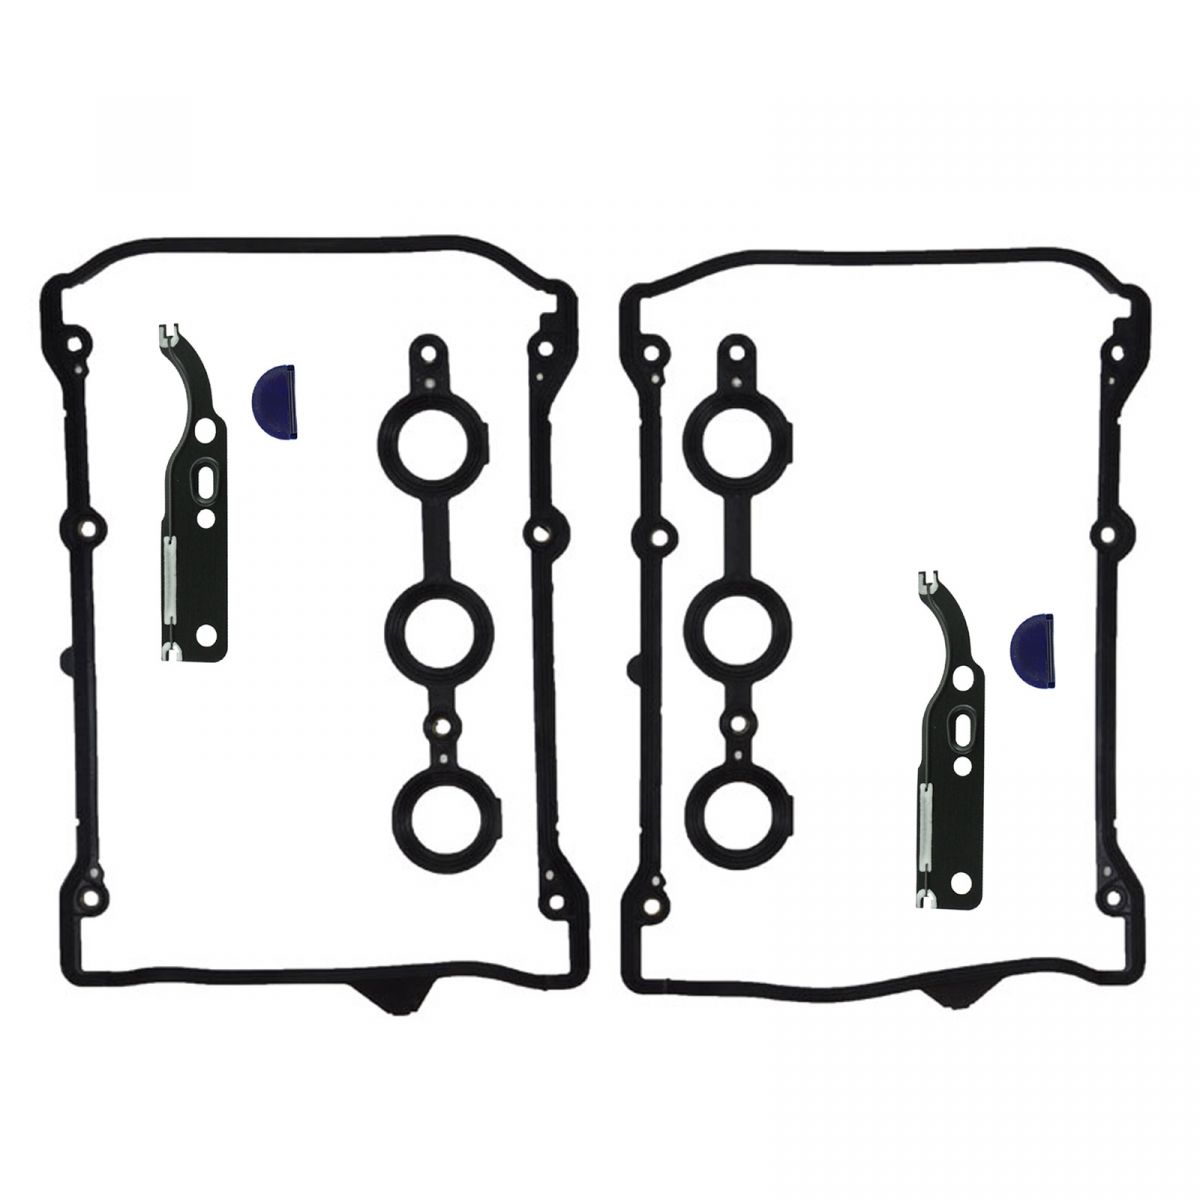 Valve Cover Camshaft Chain Tensioner Gaskets Kit Set for